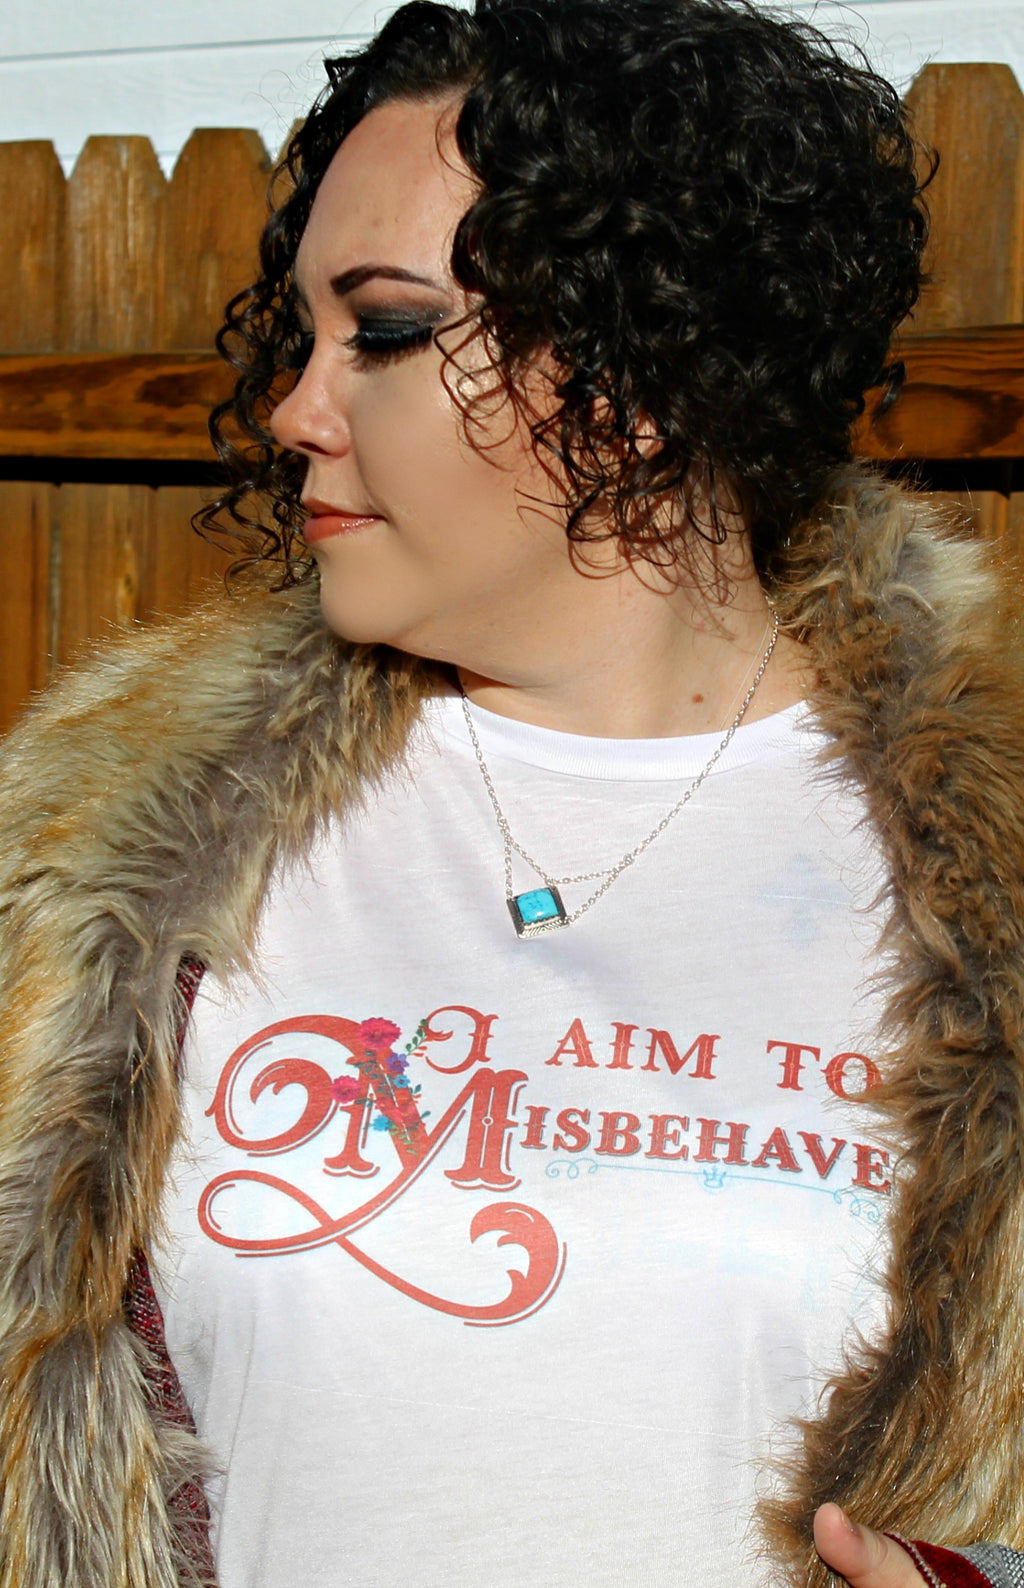 Misbehave Graphic Tee